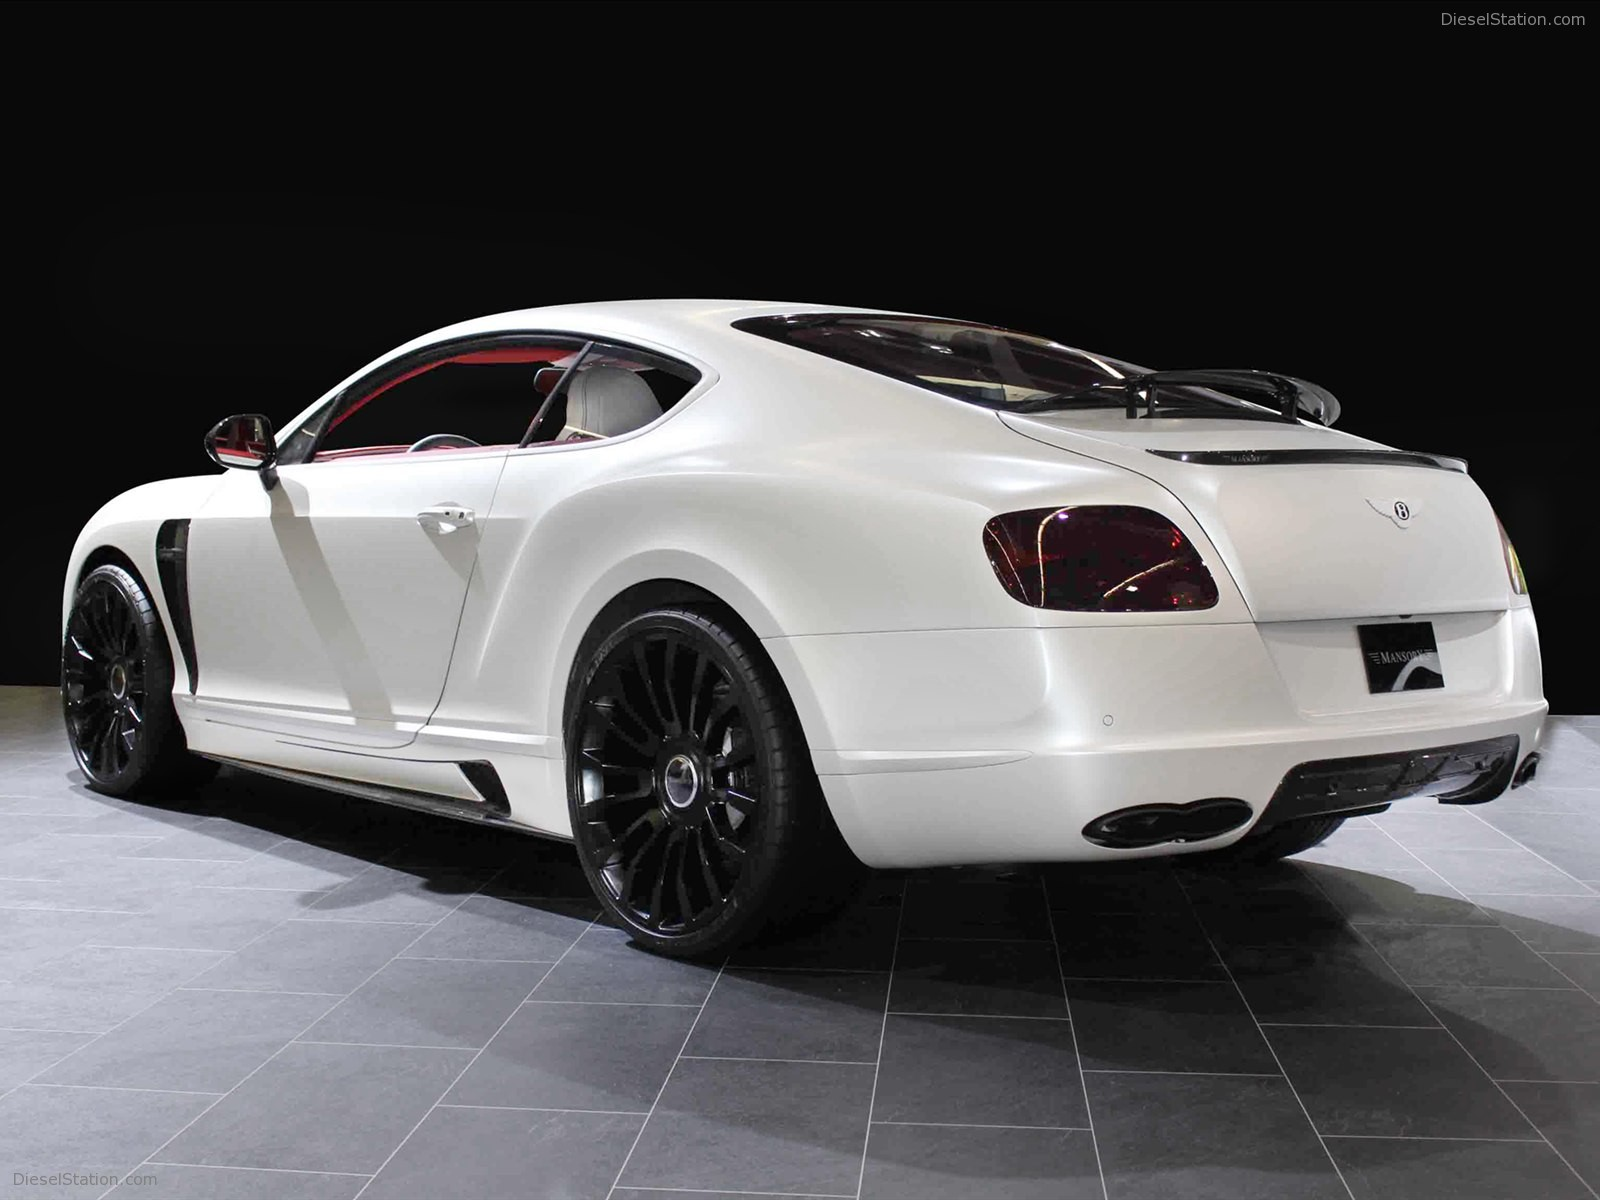 Mansory Bentley Continental GT 2011 Screensavers For Ipad